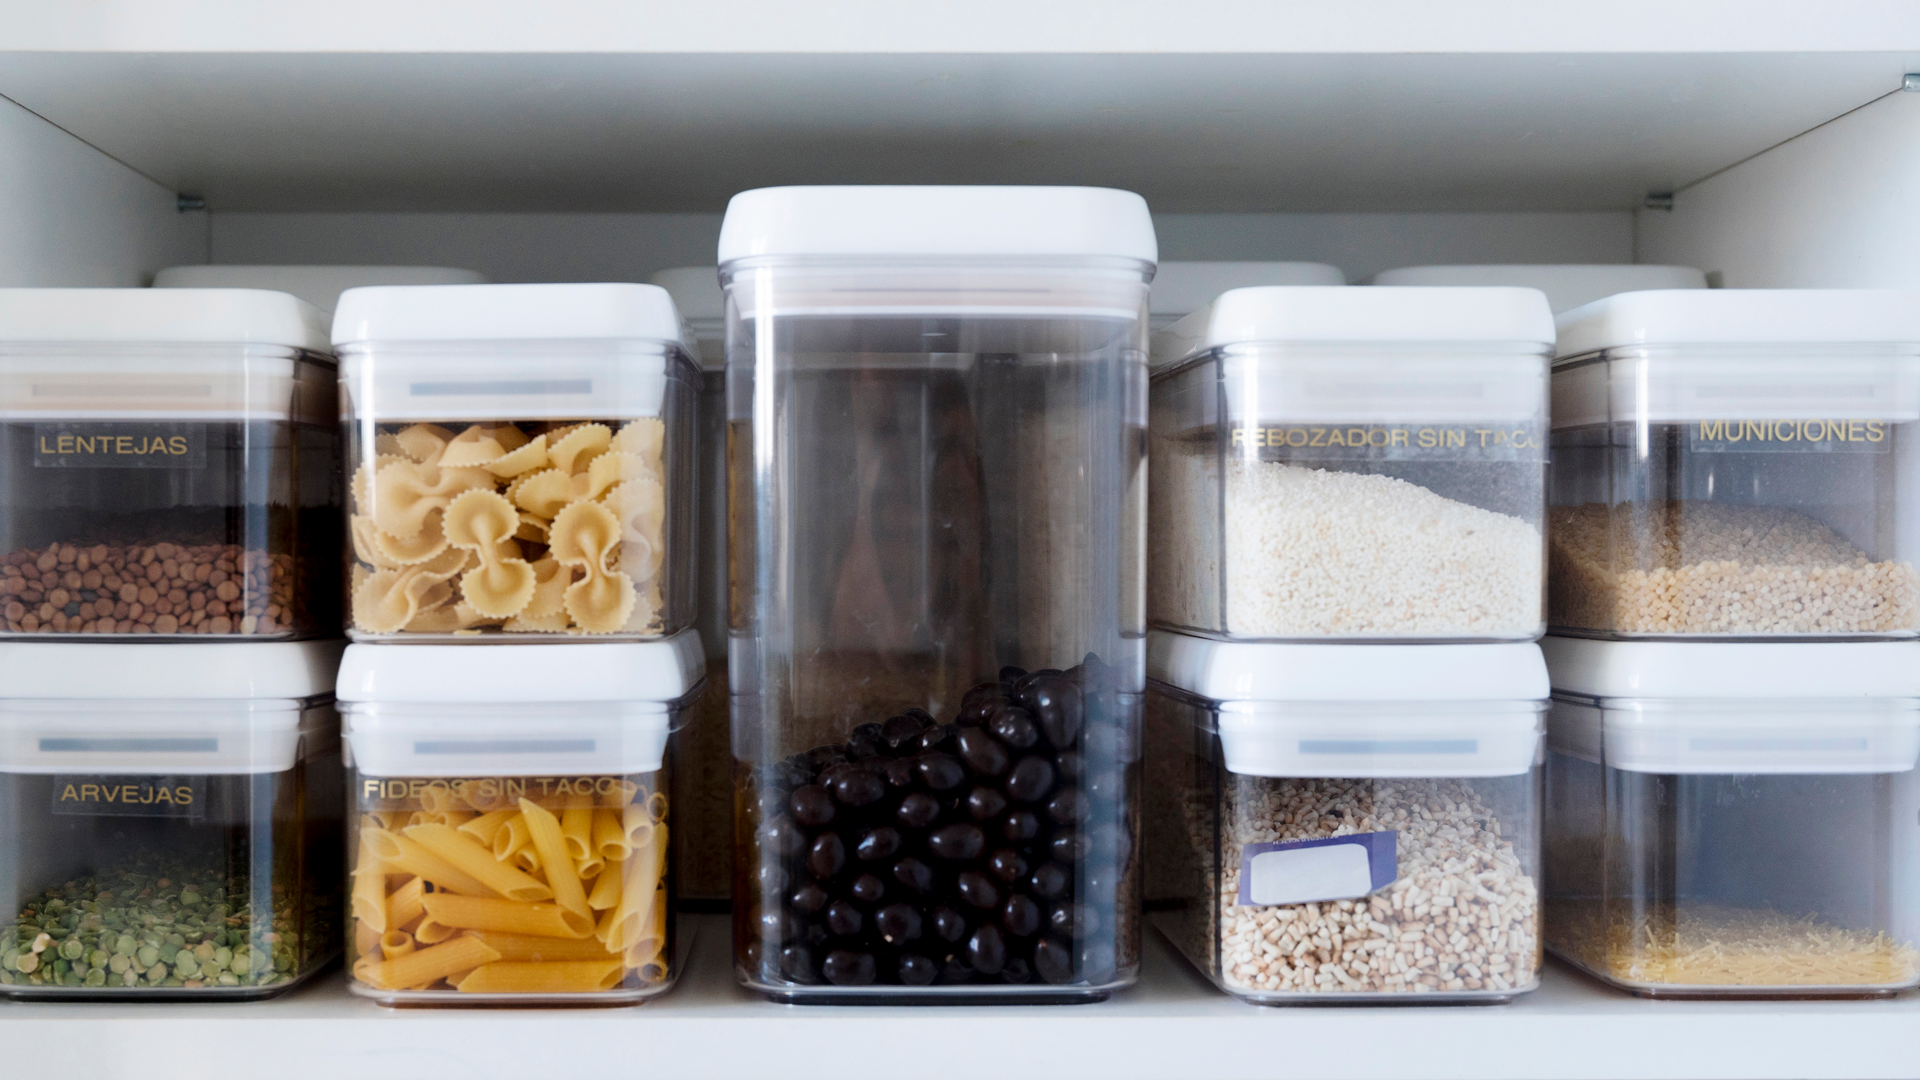 Cupboard food storage bins for an organized kitchen